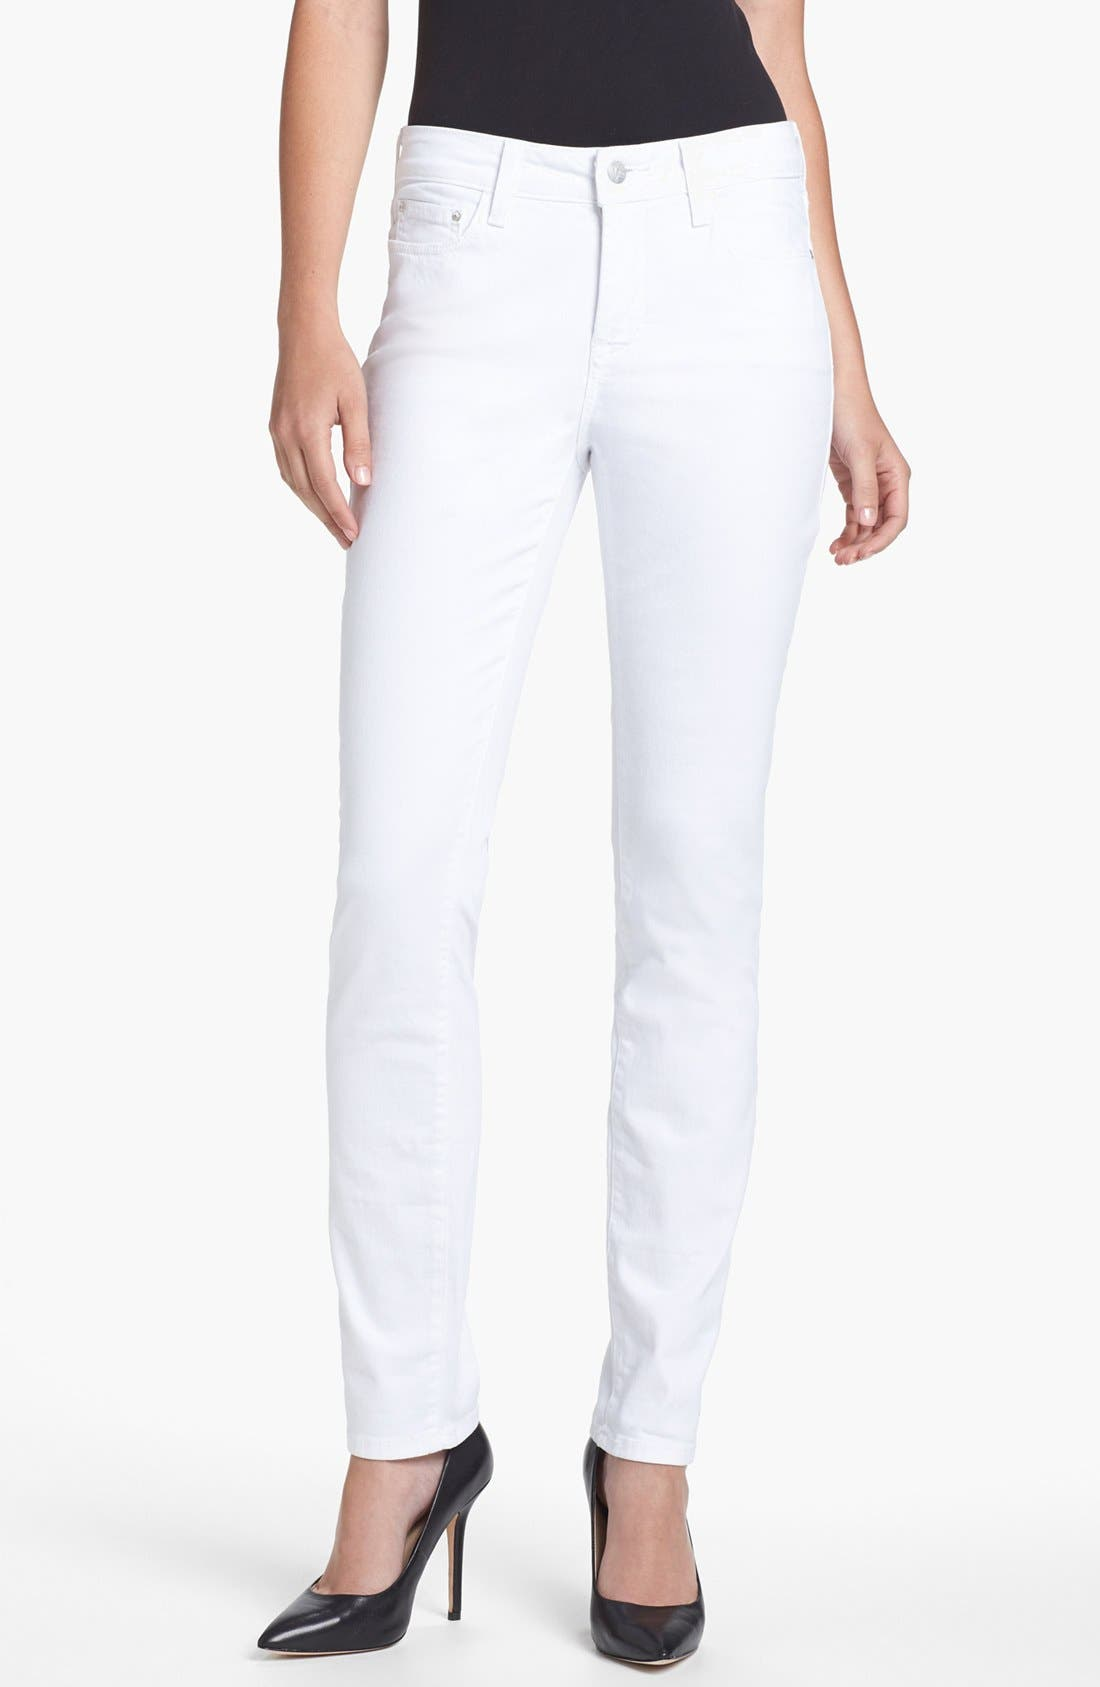 Alternate Image 1 Selected - NYDJ 'Jade' Colored Stretch Skinny Jeans